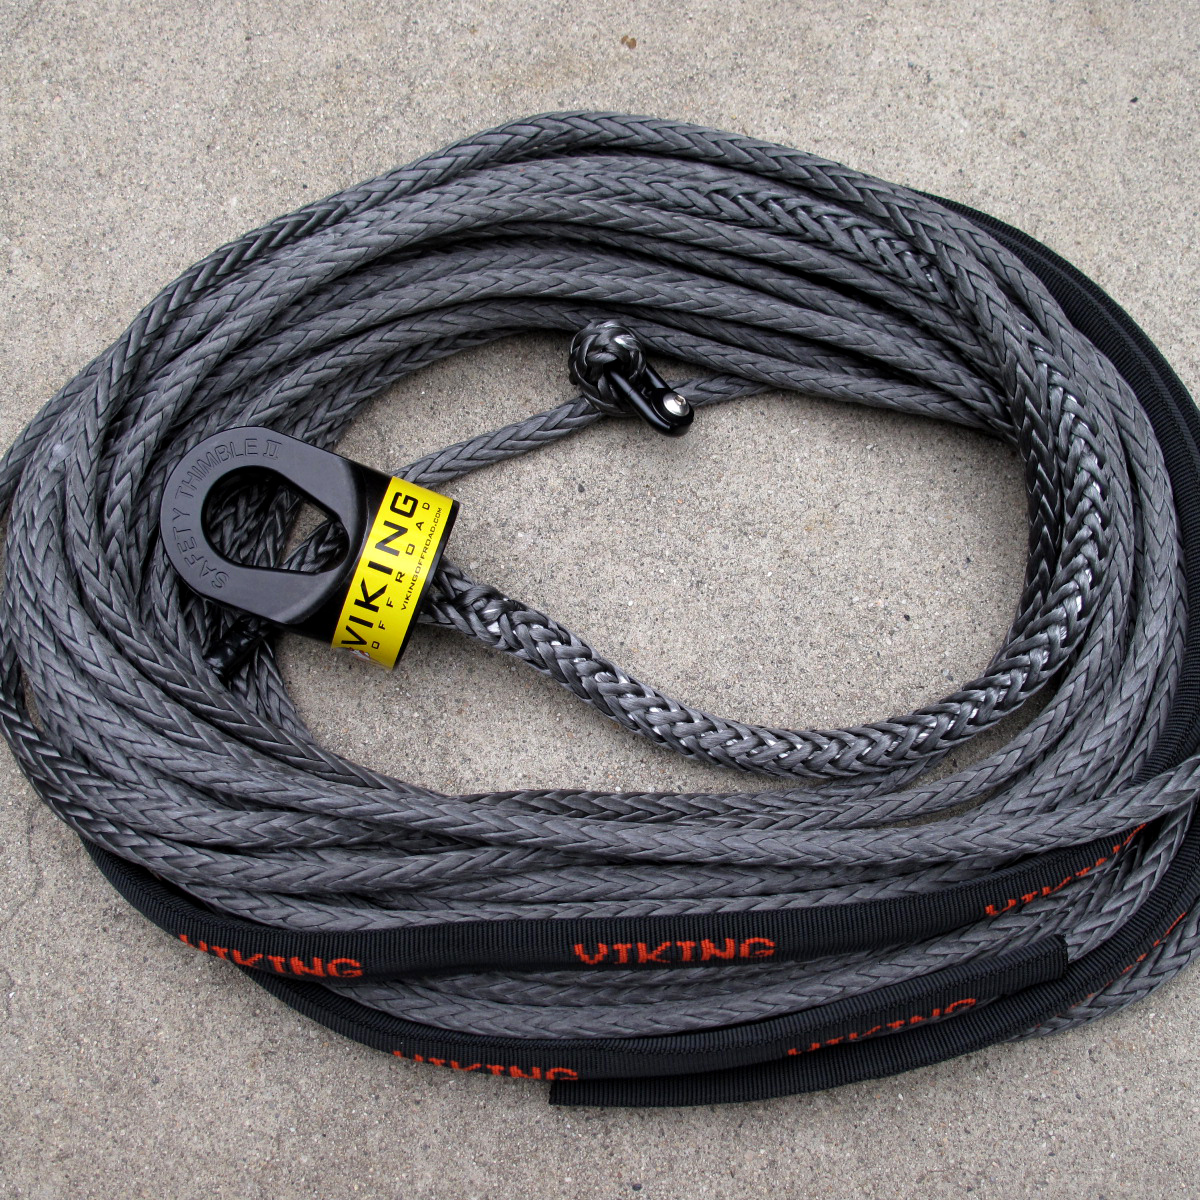 3/8 inch x 100' Viking Offroad Winchline - Black w/Black Safety Thimble